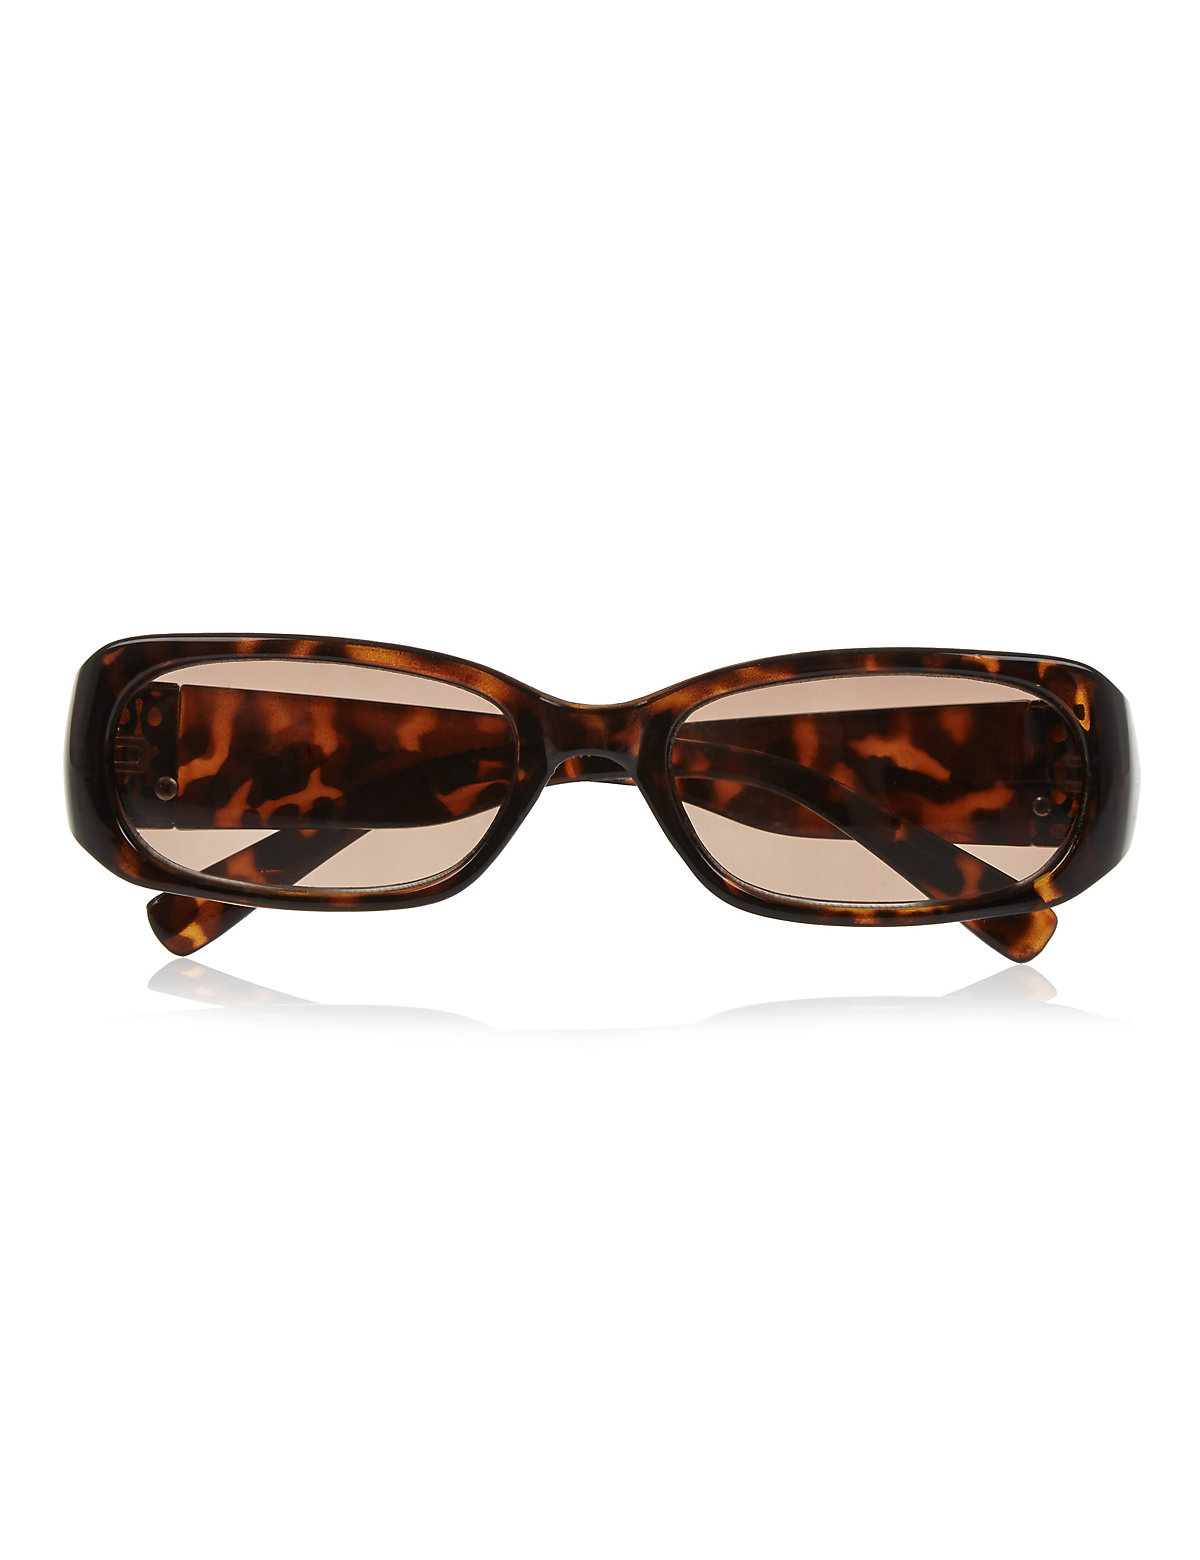 Large Mock Tortoiseshell Reading Sunglasses Brown 15